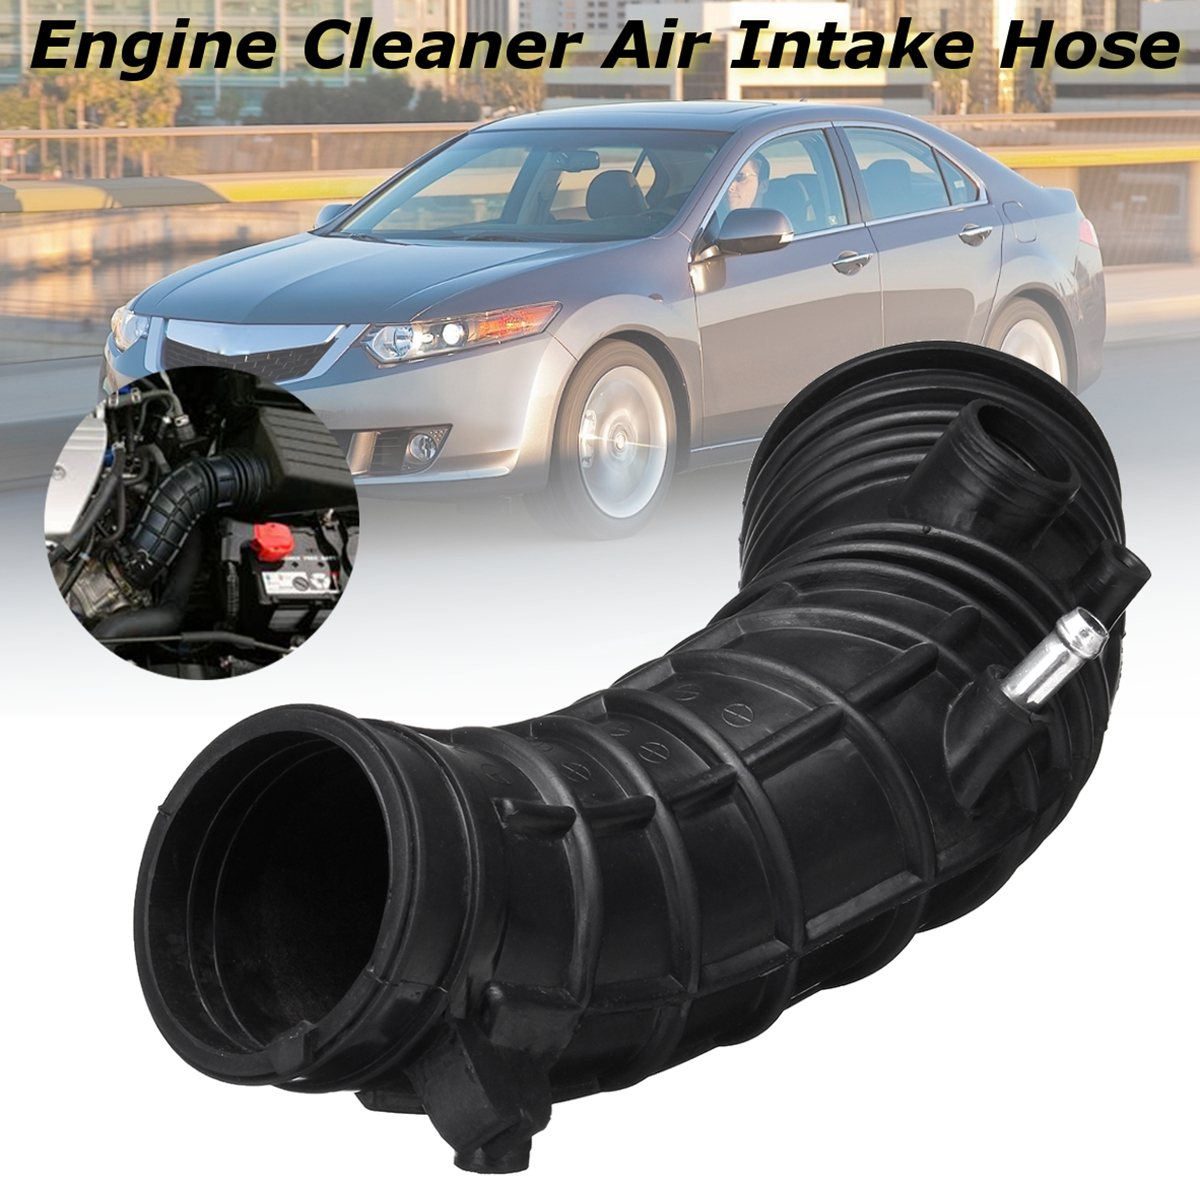 Car Auto Engine Rubber Cleaner Air Intake Hose For Acura TSX 2004 2005 2006 2007 2008 AIH551078H